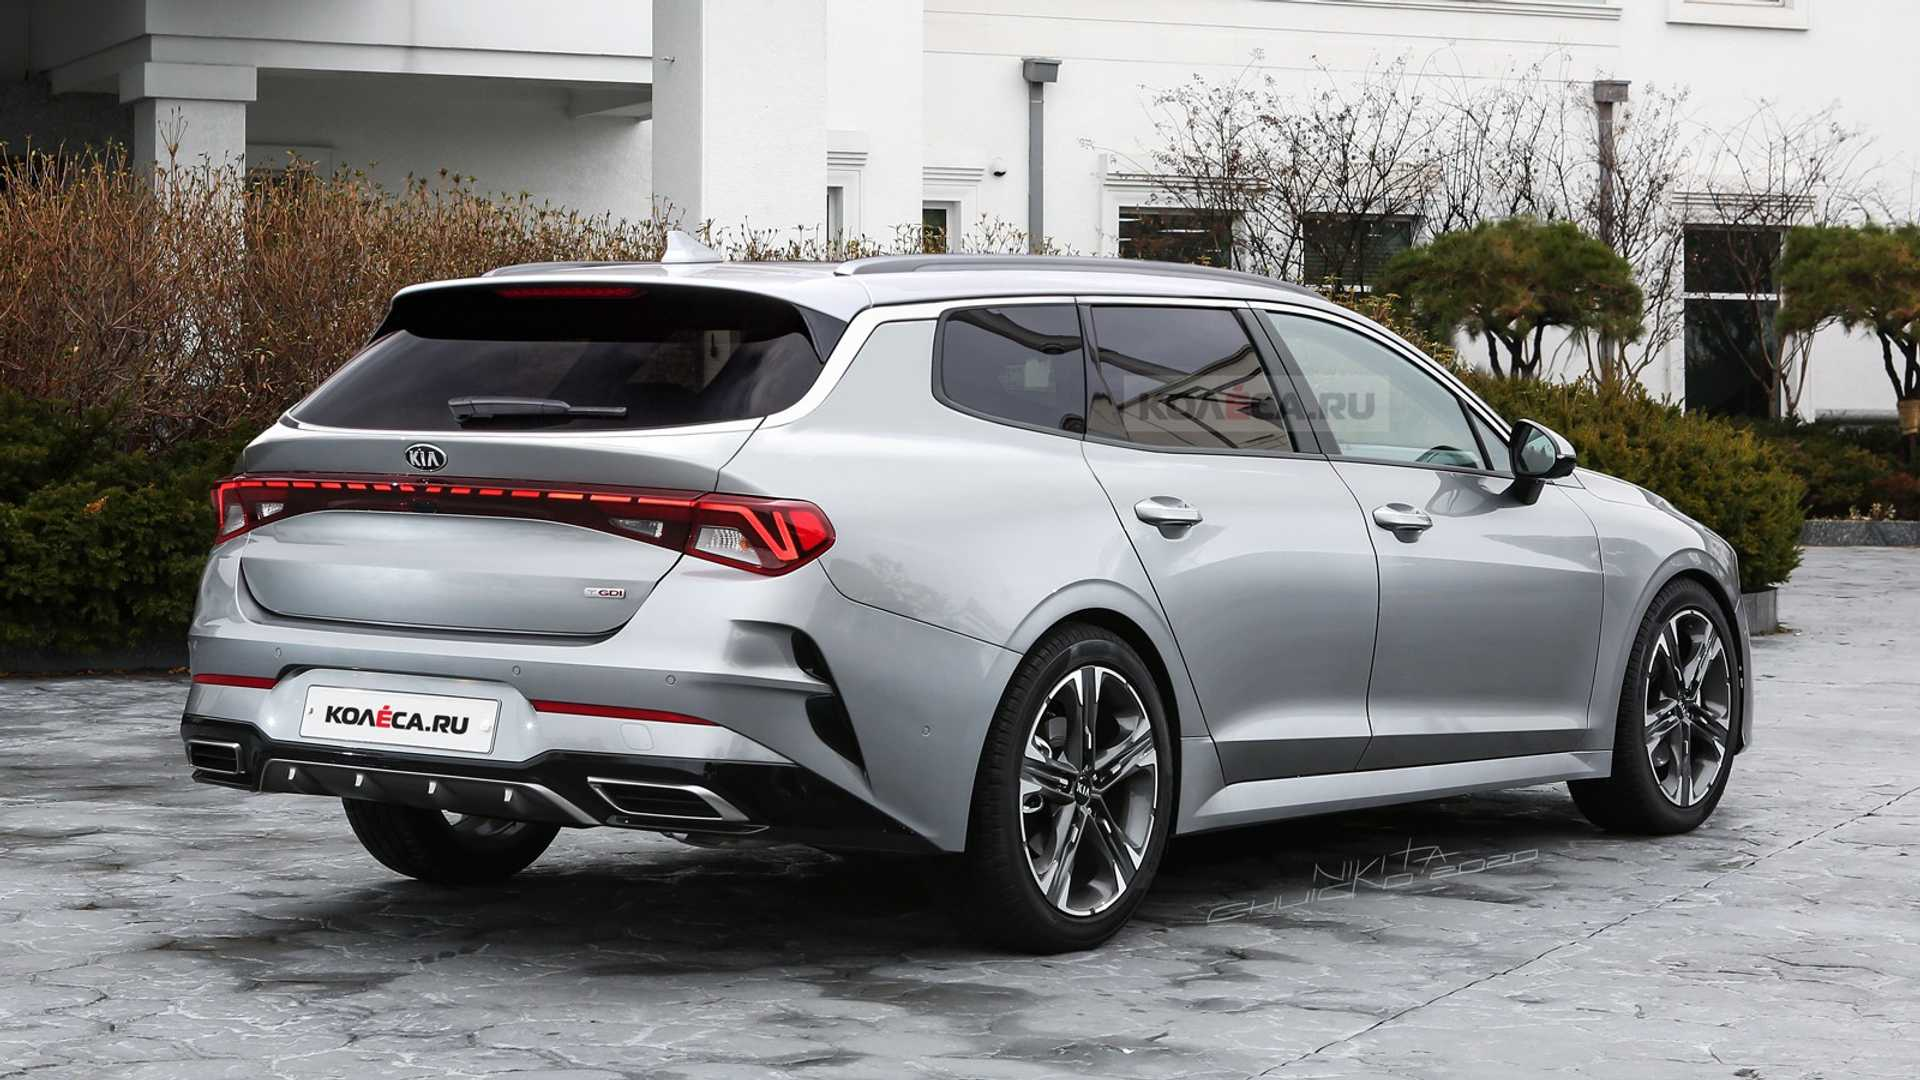 2021 kia optima wagon rendered looks like an suv cure